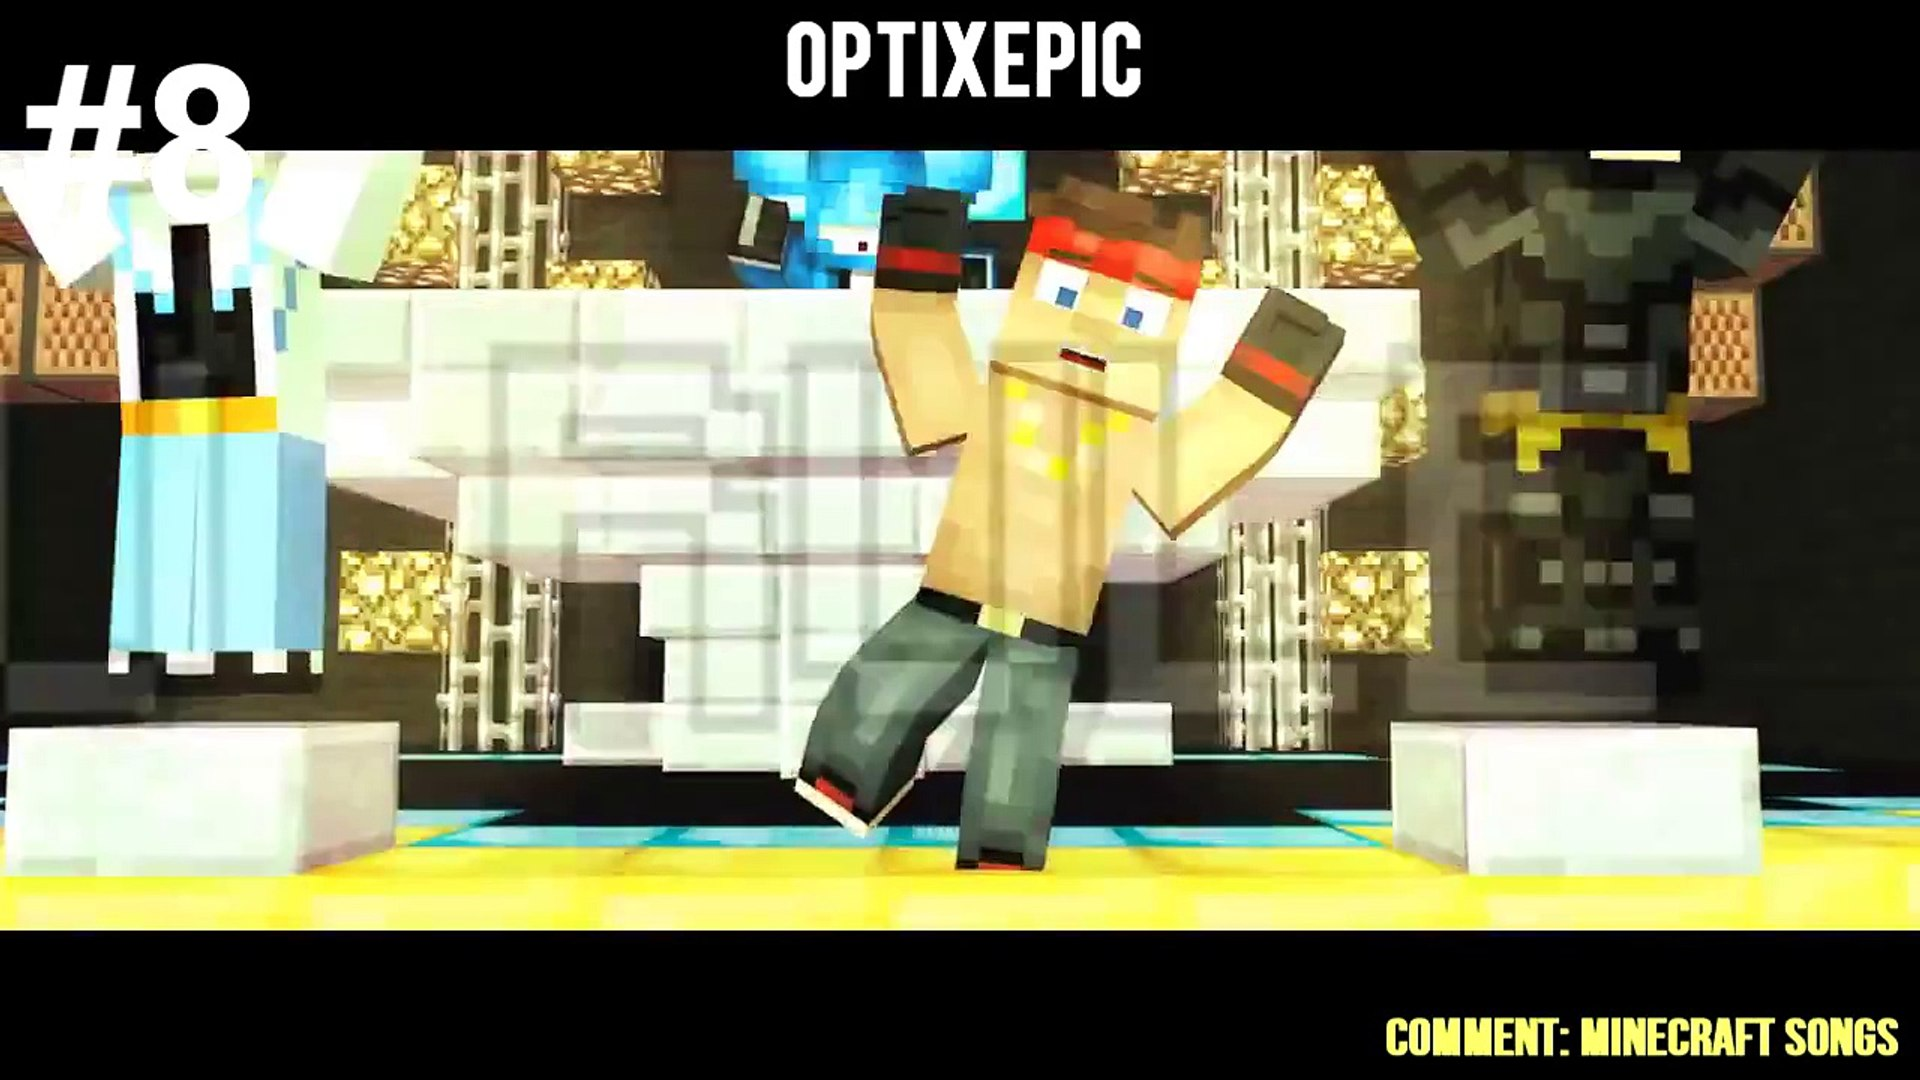 Top 10 Minecraft Song - January 2015 Best Minecraft Songs Animations Parody Parodies 2015